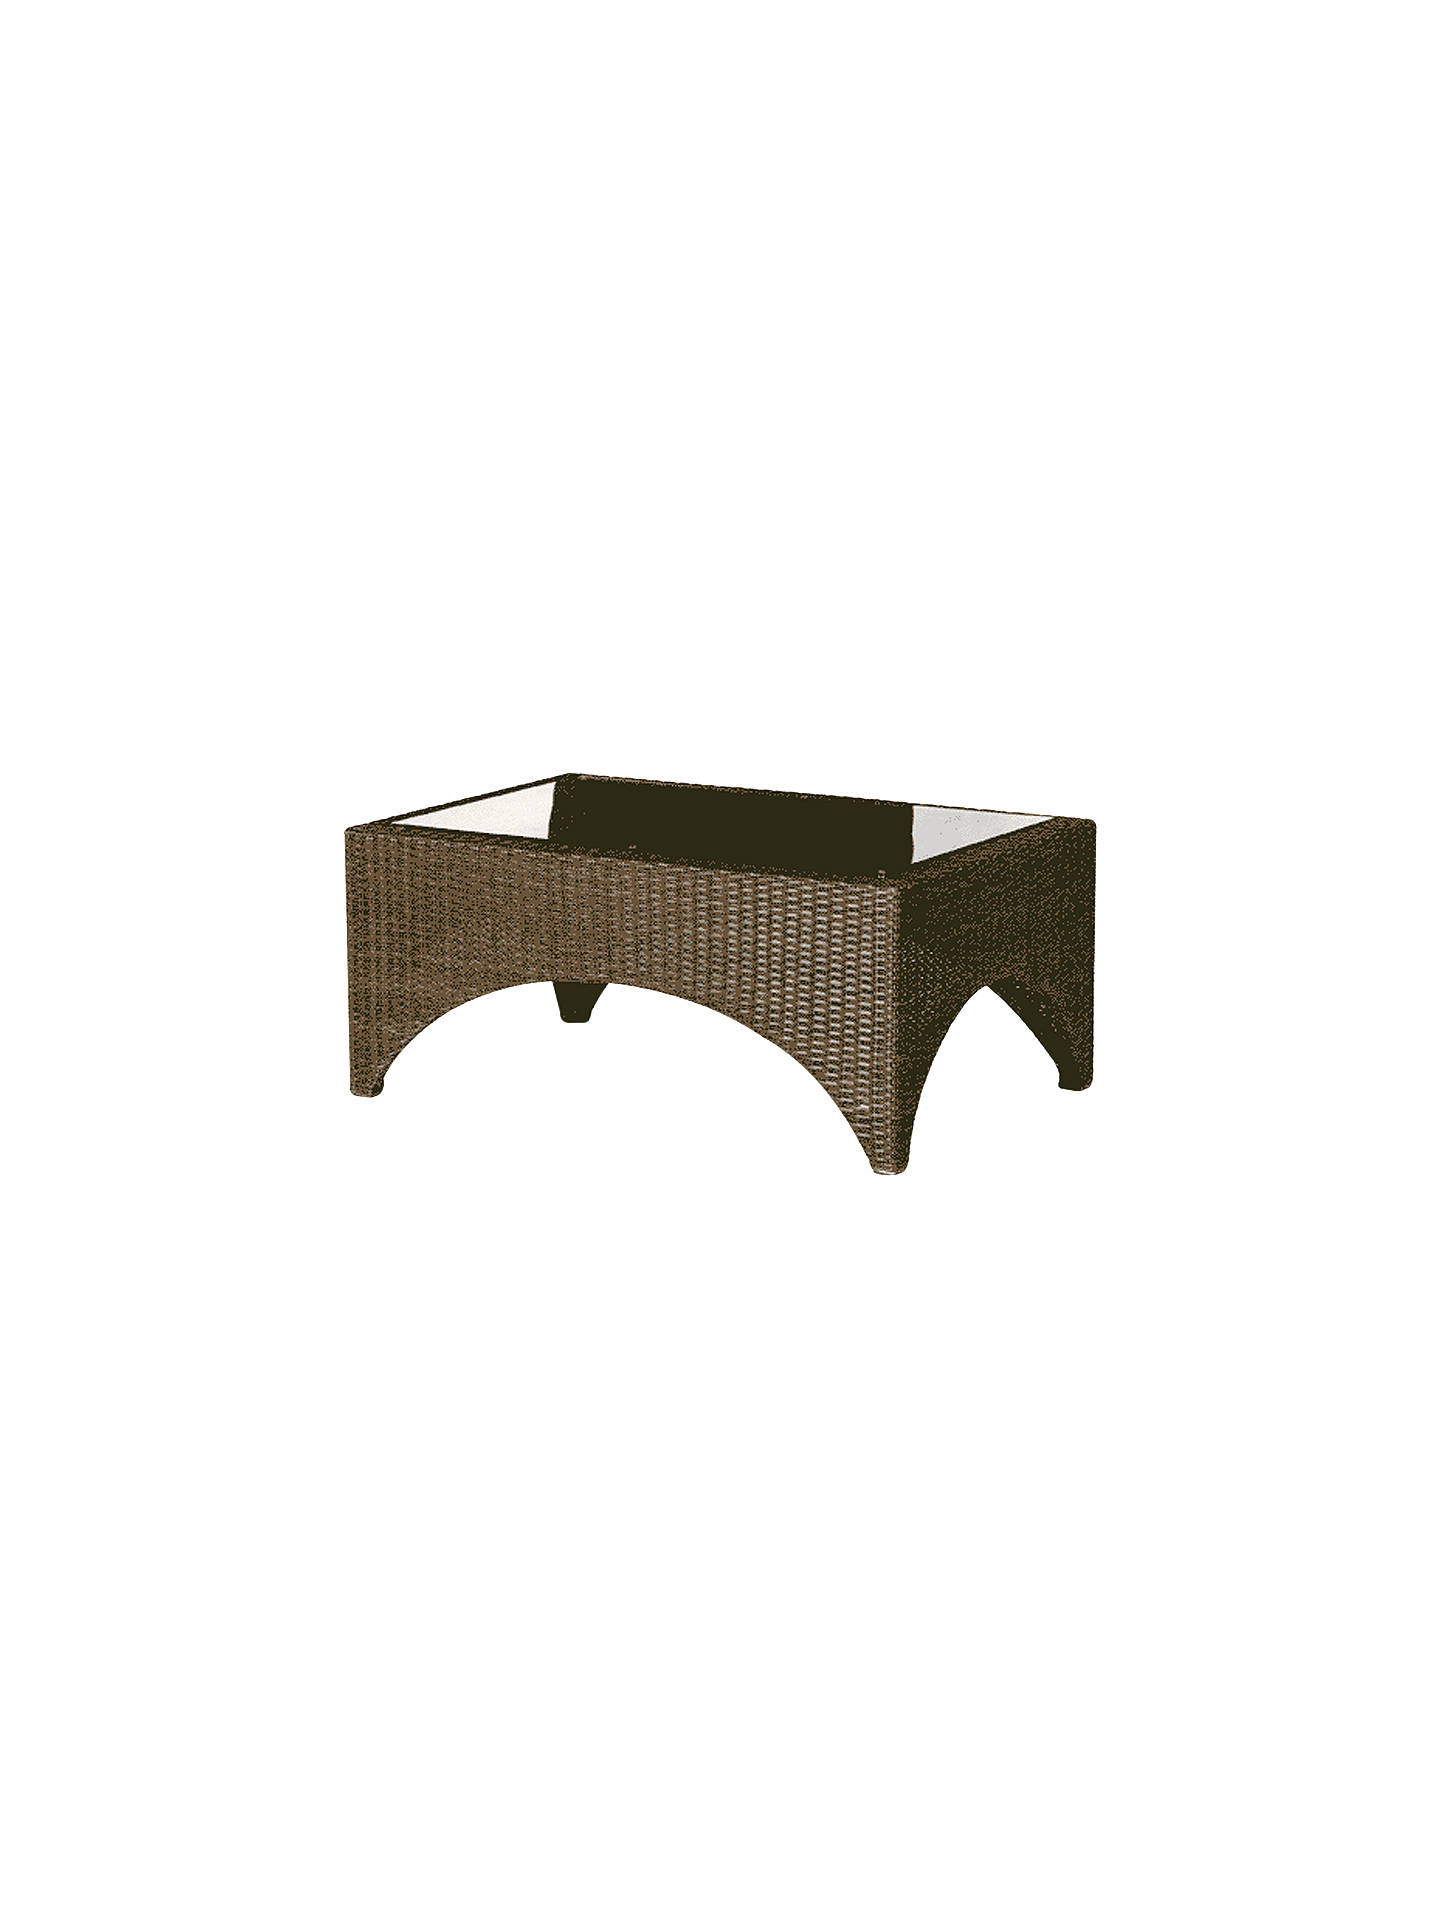 BuyBarlow Tyrie Savannah Rectangular 2-Seater Garden Coffee Table Online at johnlewis.com